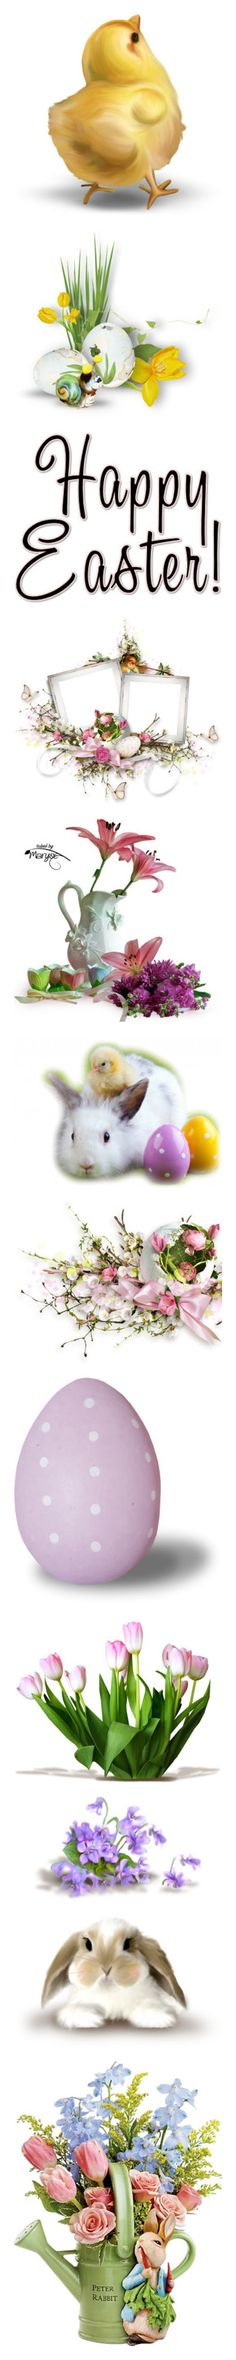 """""""Easter"""" by riagr ❤ liked on Polyvore featuring easter, cluster, eggs, words, text, holidays, quotes, phrase, saying and frames"""